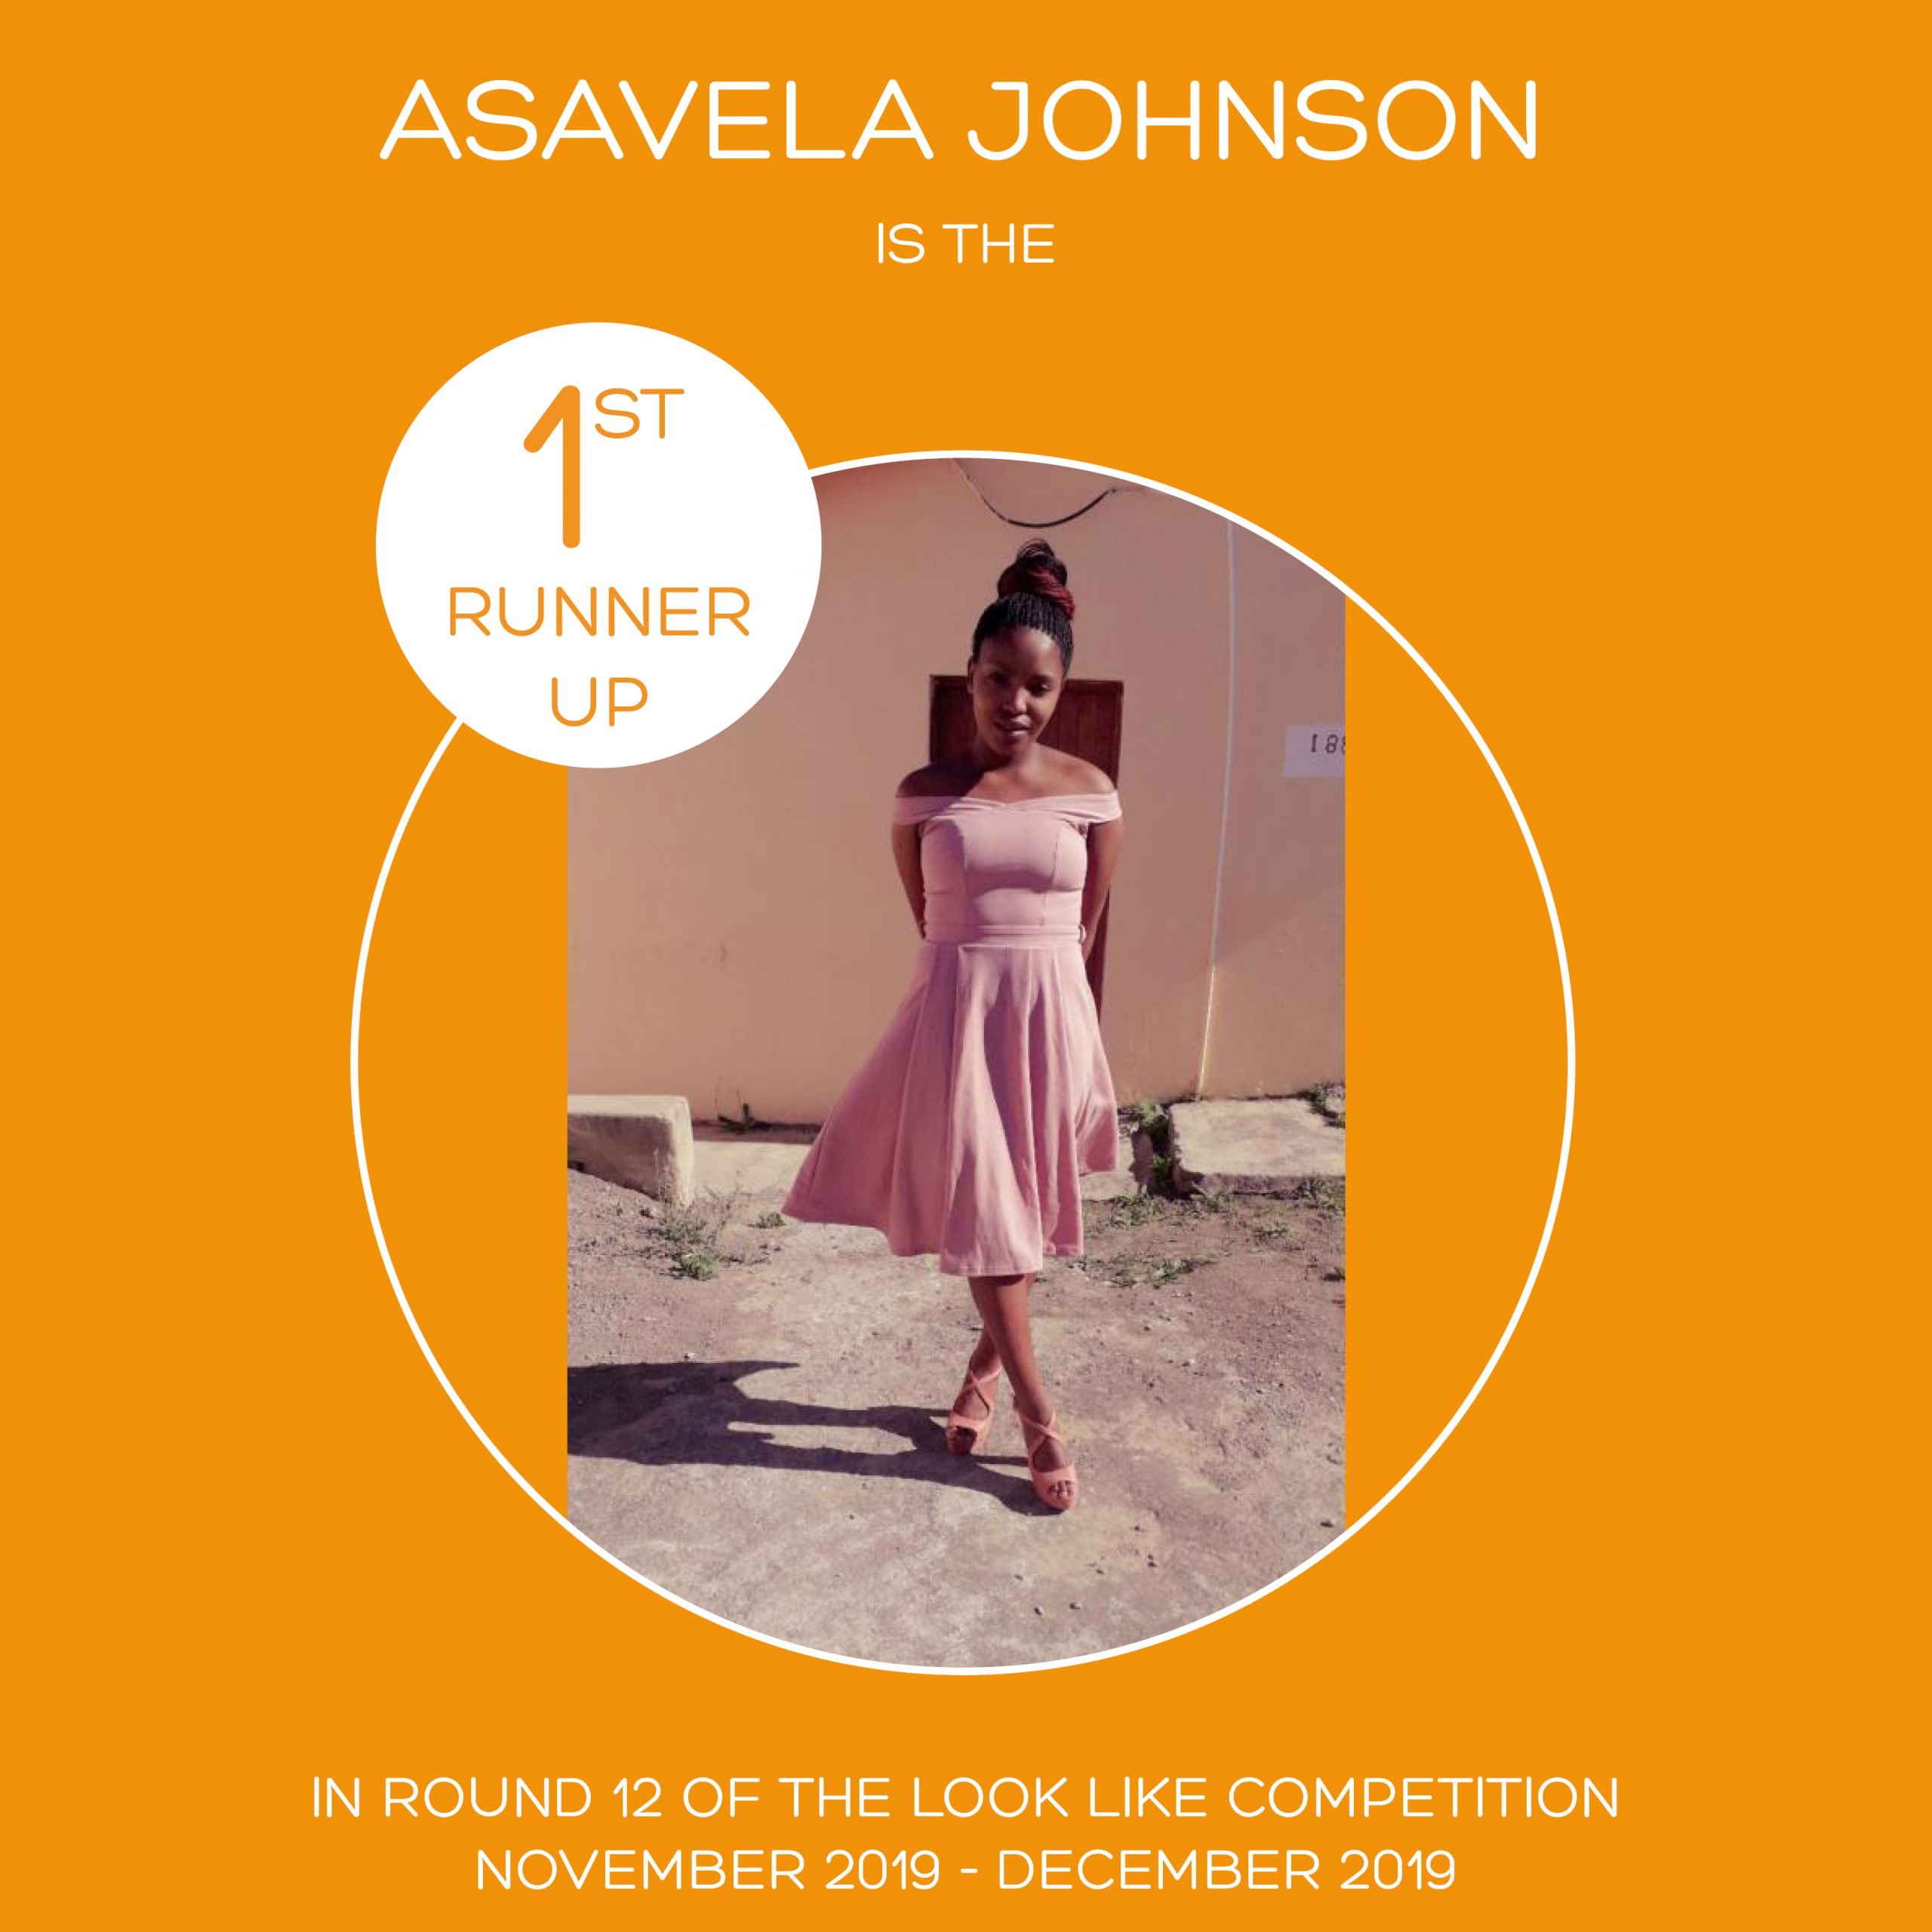 ROUND 12 – FLASH FASHION ROUND – 1ST RUNNER UP – ASAVELA JOHNSON